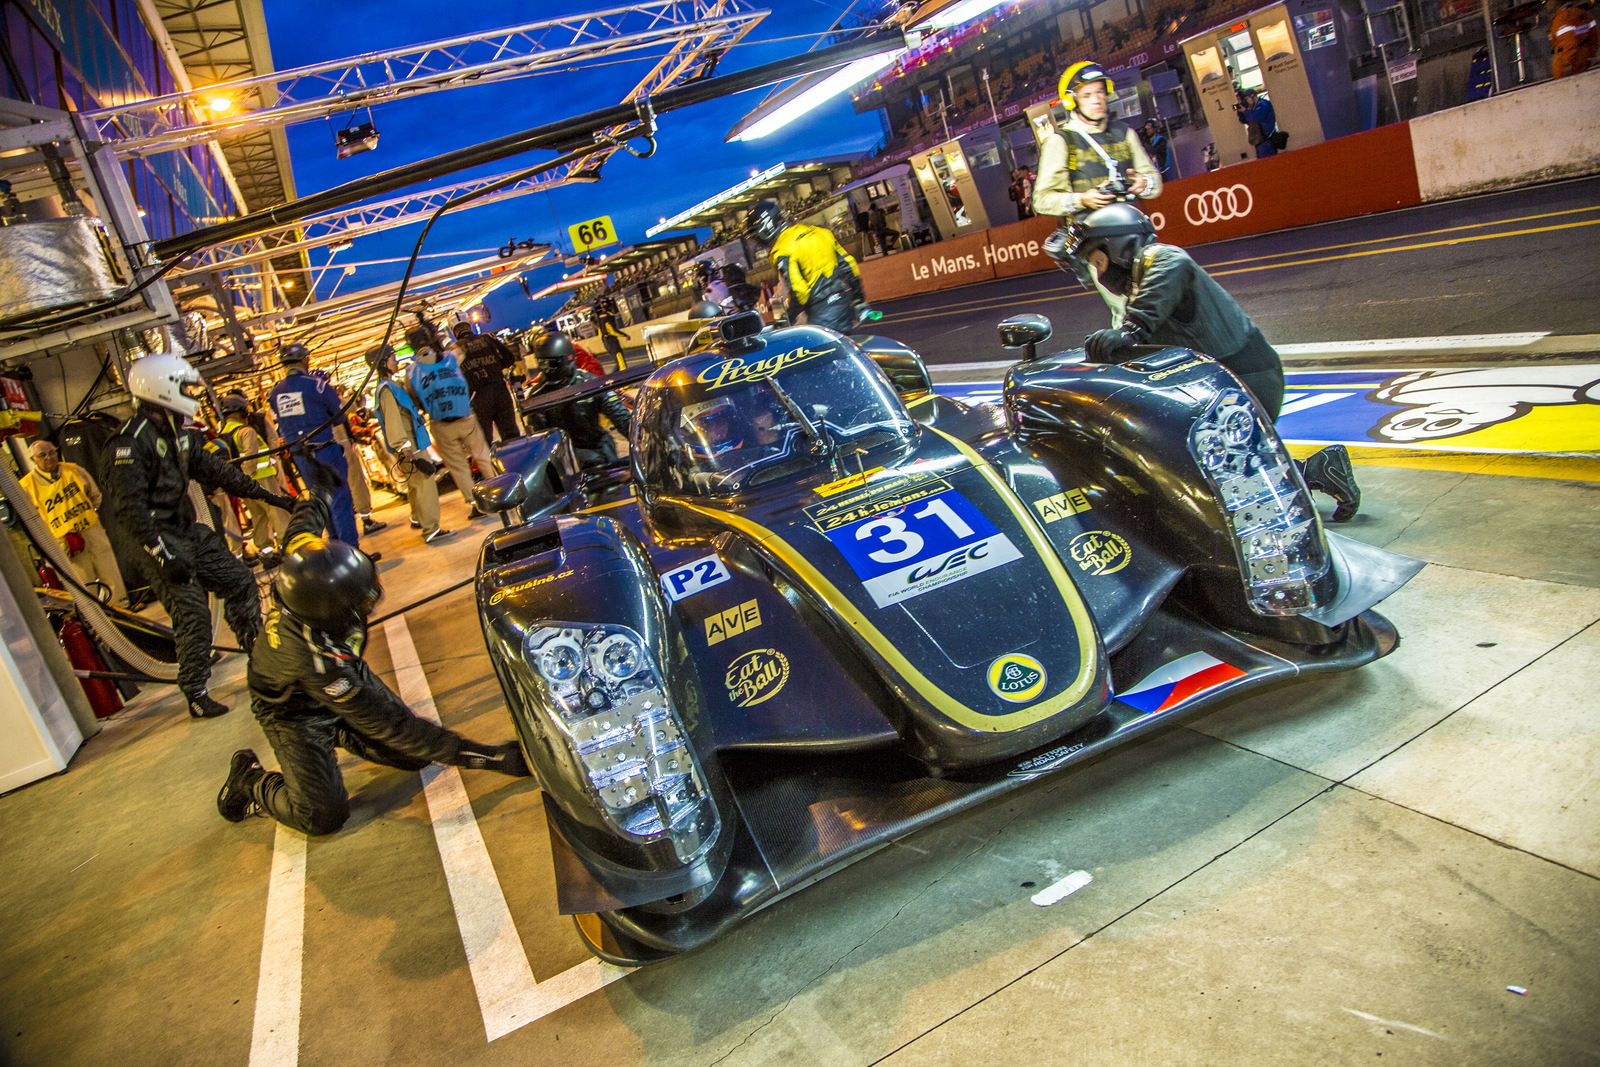 Praga at 24H Le Mans: Wednesday